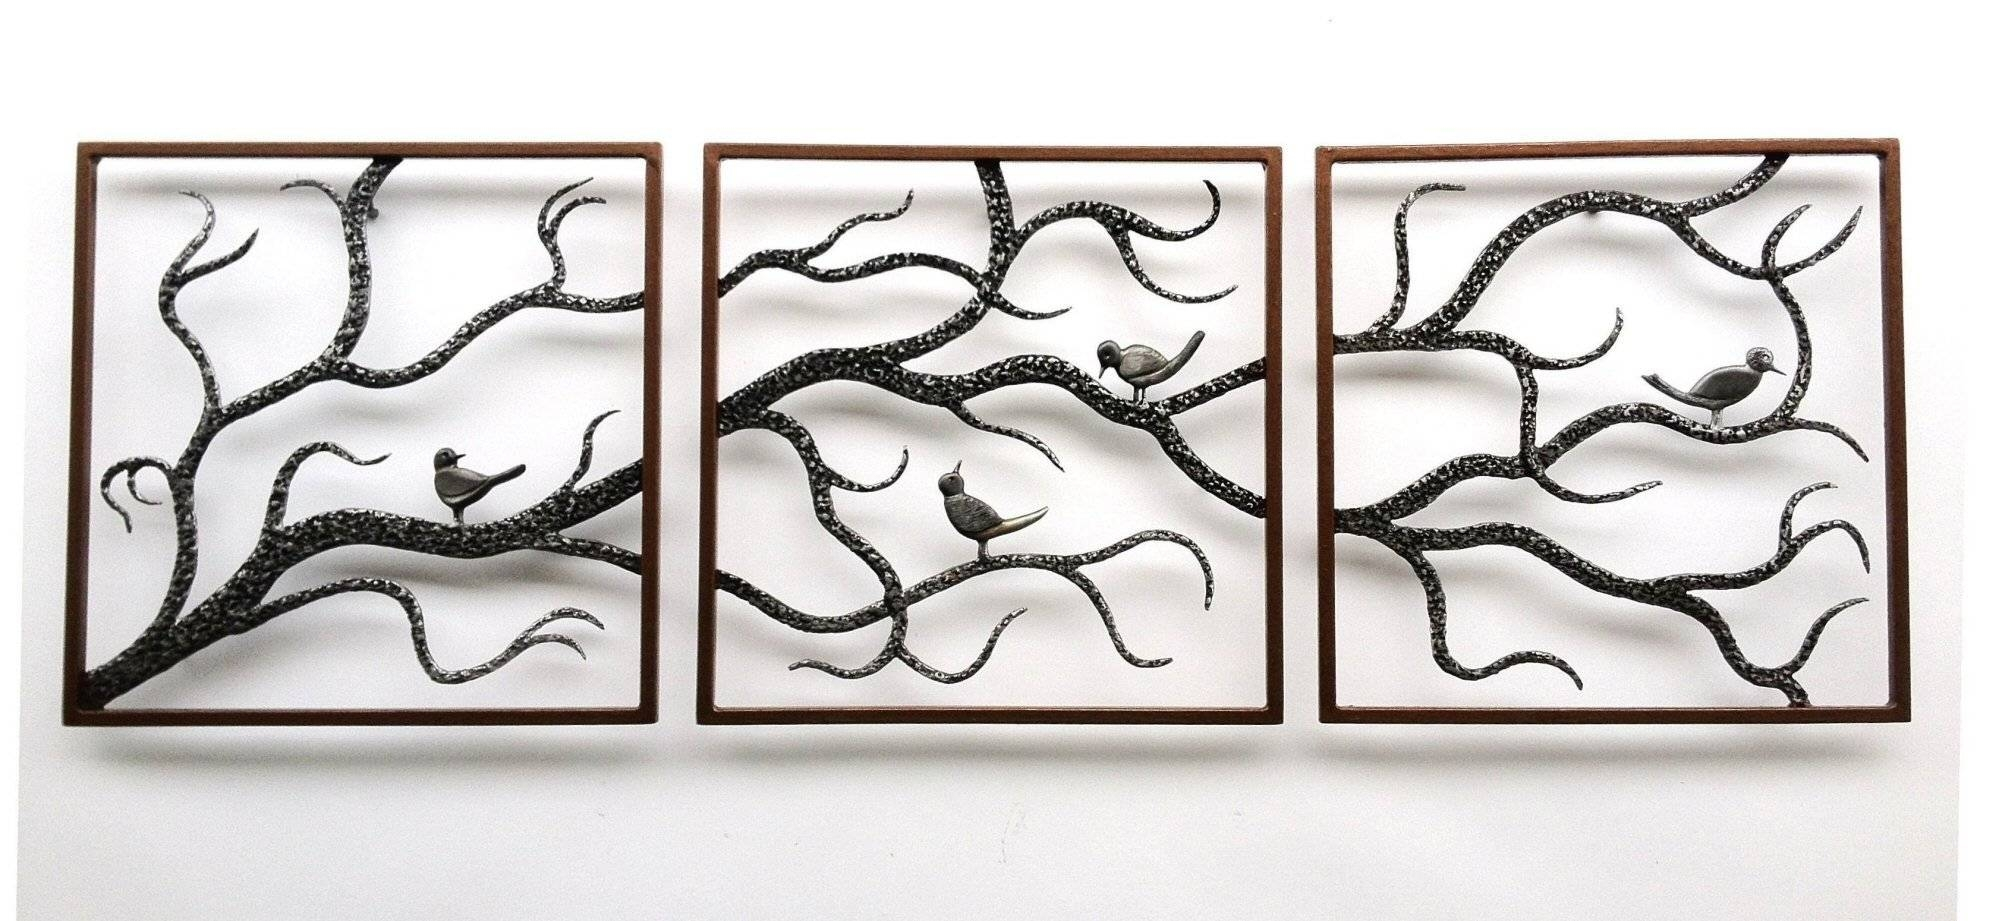 Wall Art Designs: Metal Wall Art Trees Birch Three Framed Cute With Regard To Most Current Birds On A Branch Metal Wall Art (View 14 of 20)